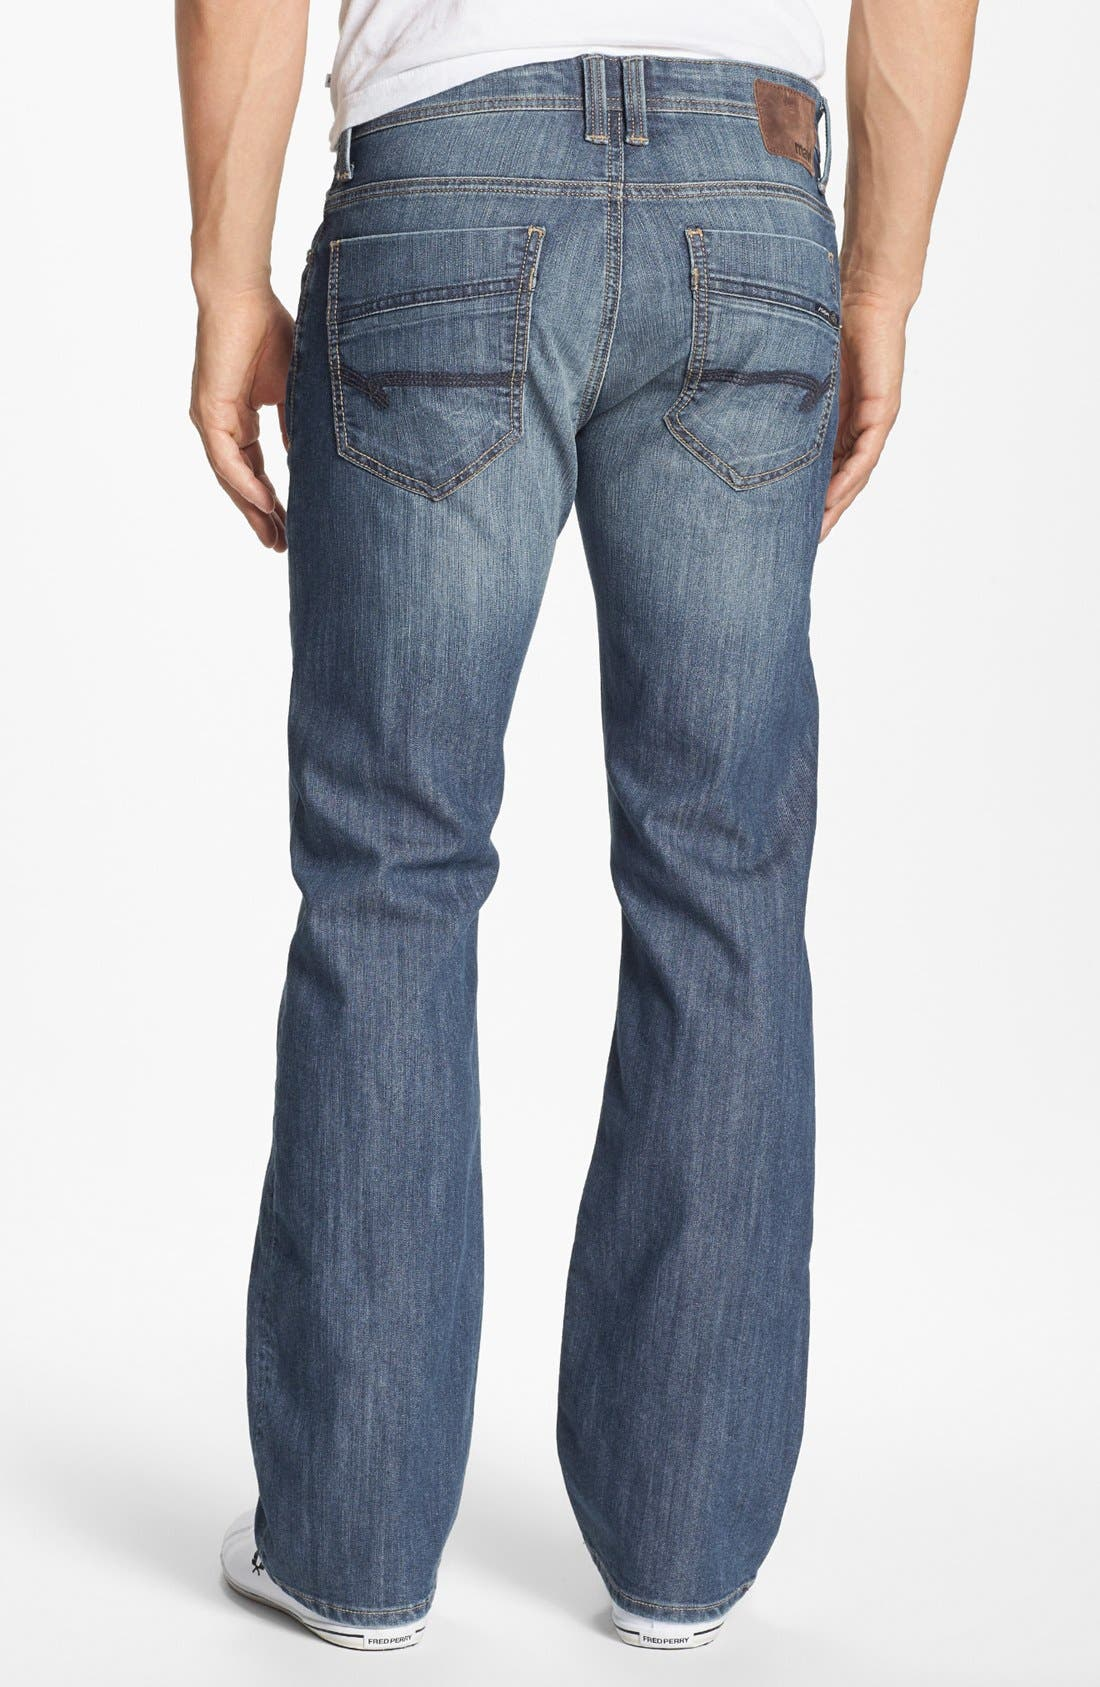 Alternate Image 1 Selected - Mavi Jeans 'Josh' Bootcut Jeans (Brushed American Comfort) (Online Only)